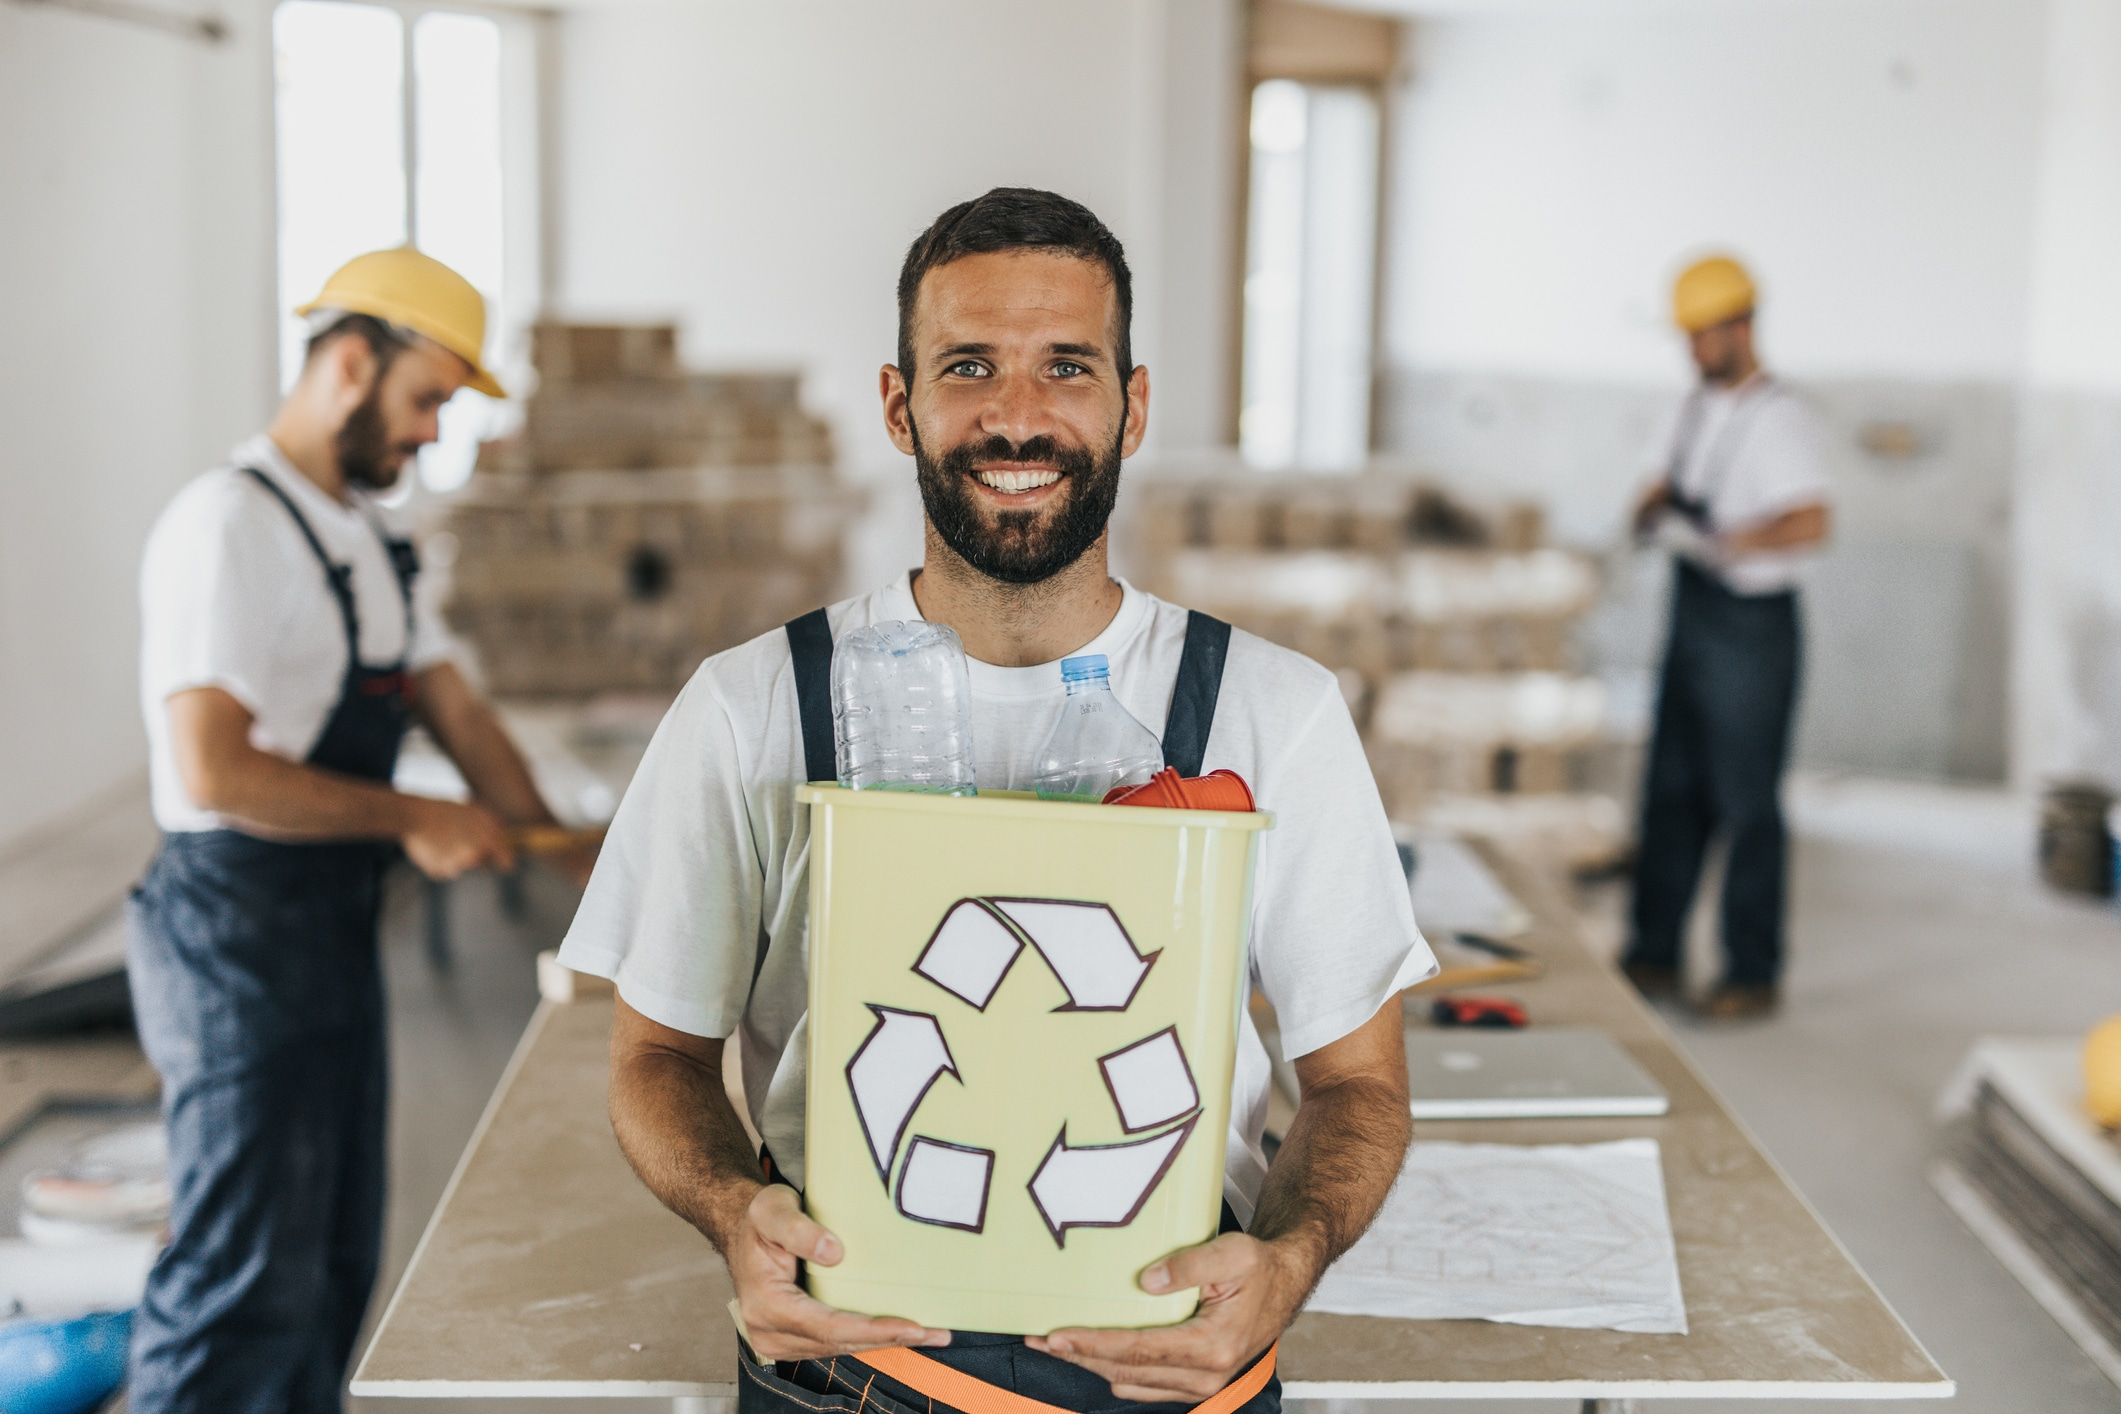 Construction recycling manager